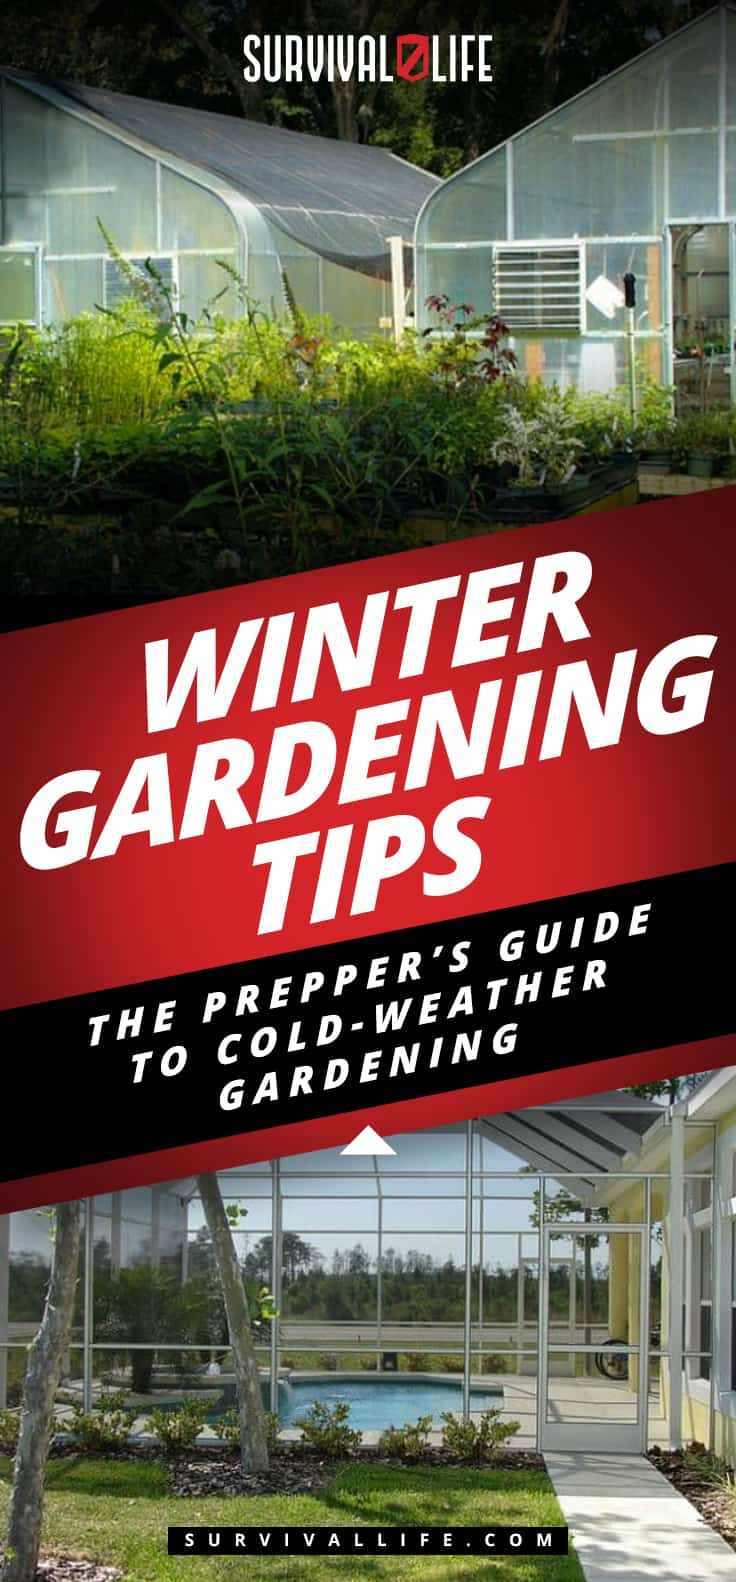 Placard | Winter Gardening Tips: The Prepper's Guide to Cold-Weather Gardening | gardening in winter months